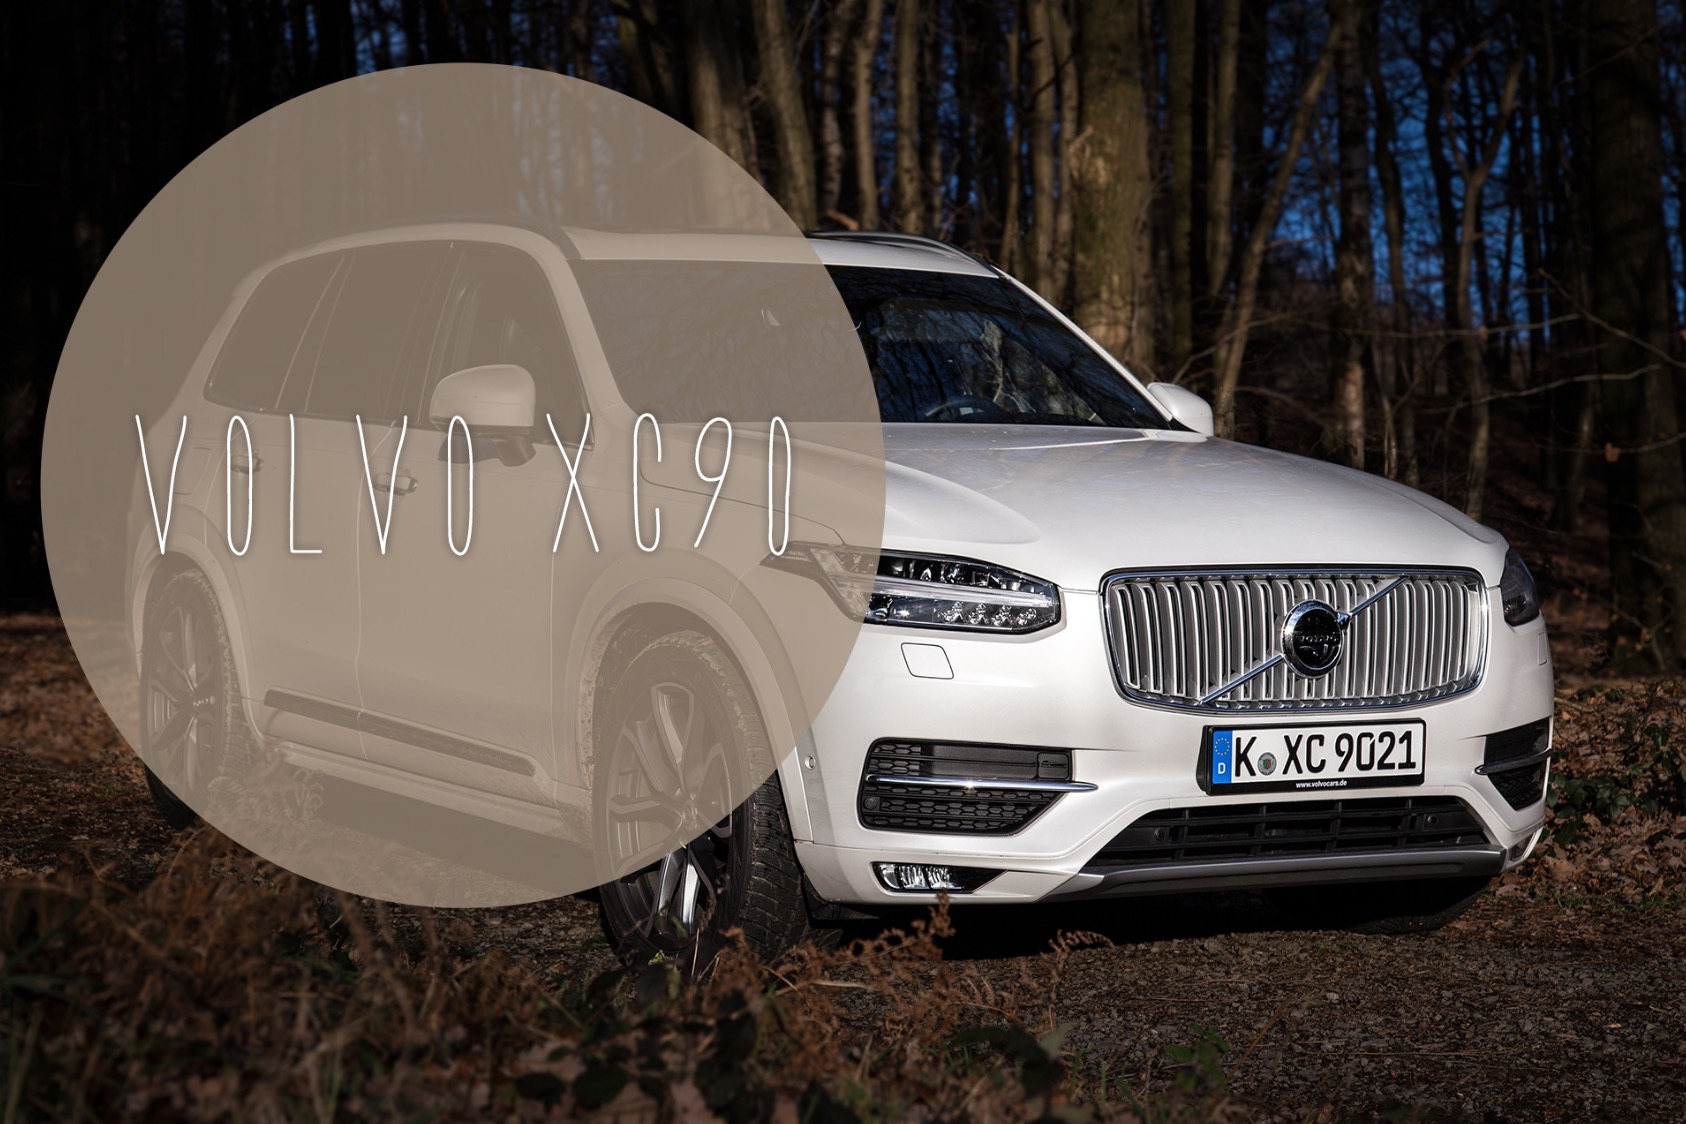 volvo xc90 im familien test fahrbericht und video. Black Bedroom Furniture Sets. Home Design Ideas